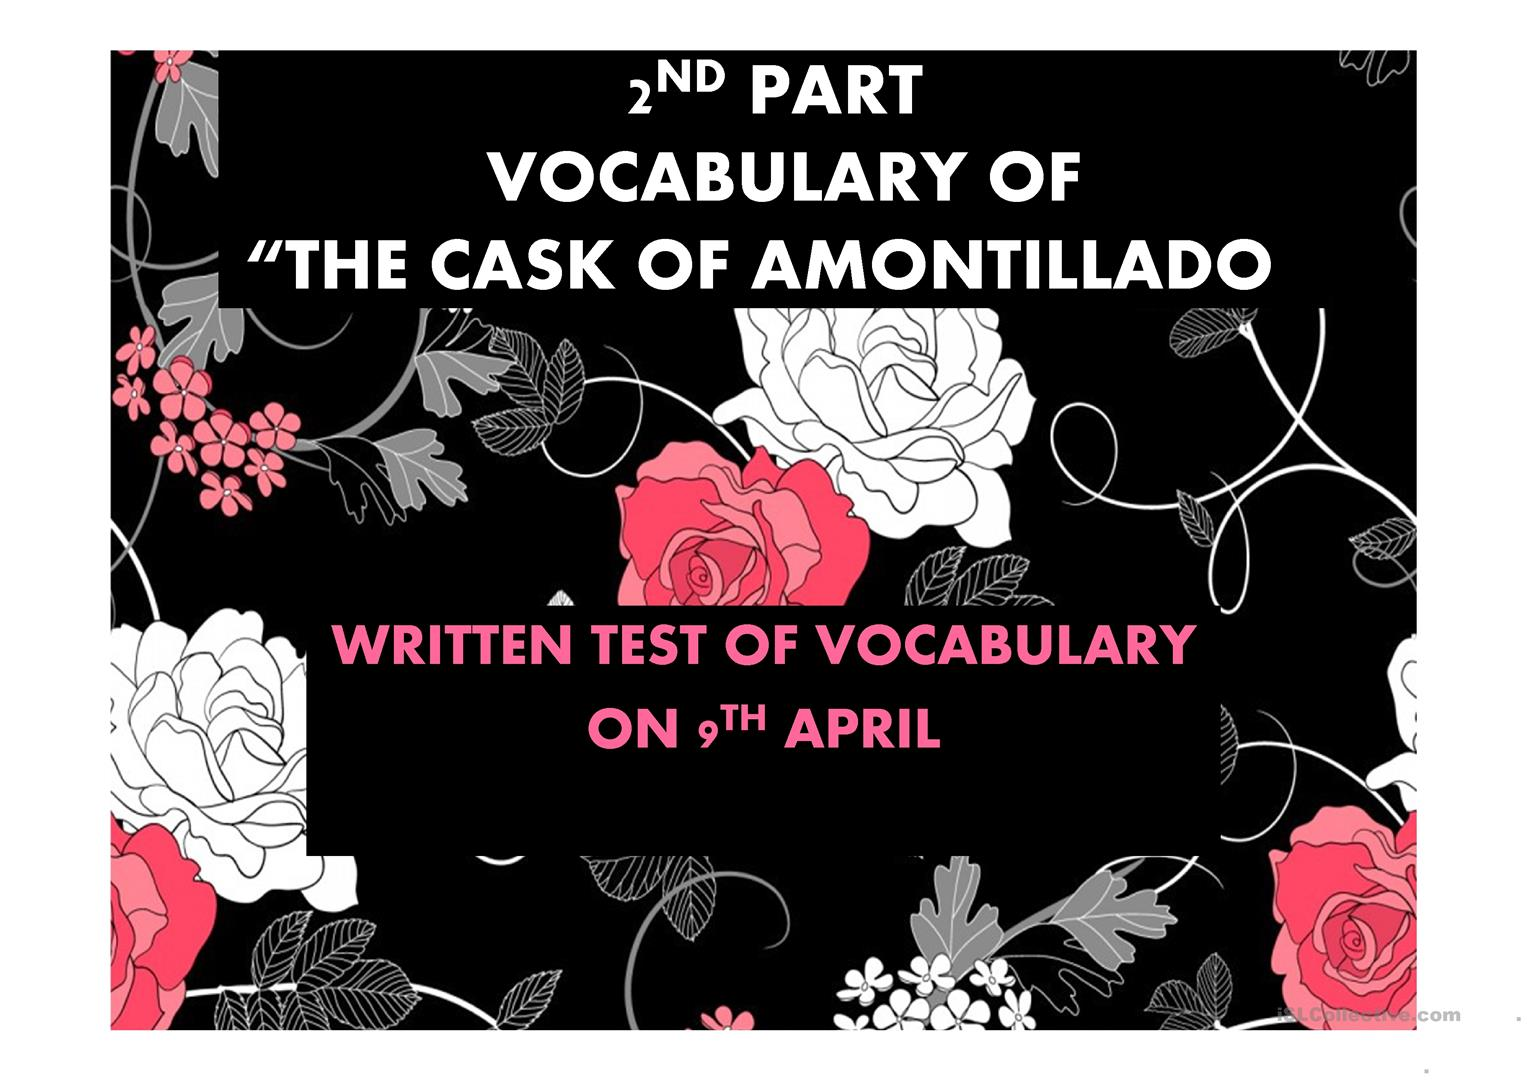 Second Part Of Vocabulary The Cask Of Amontillado By